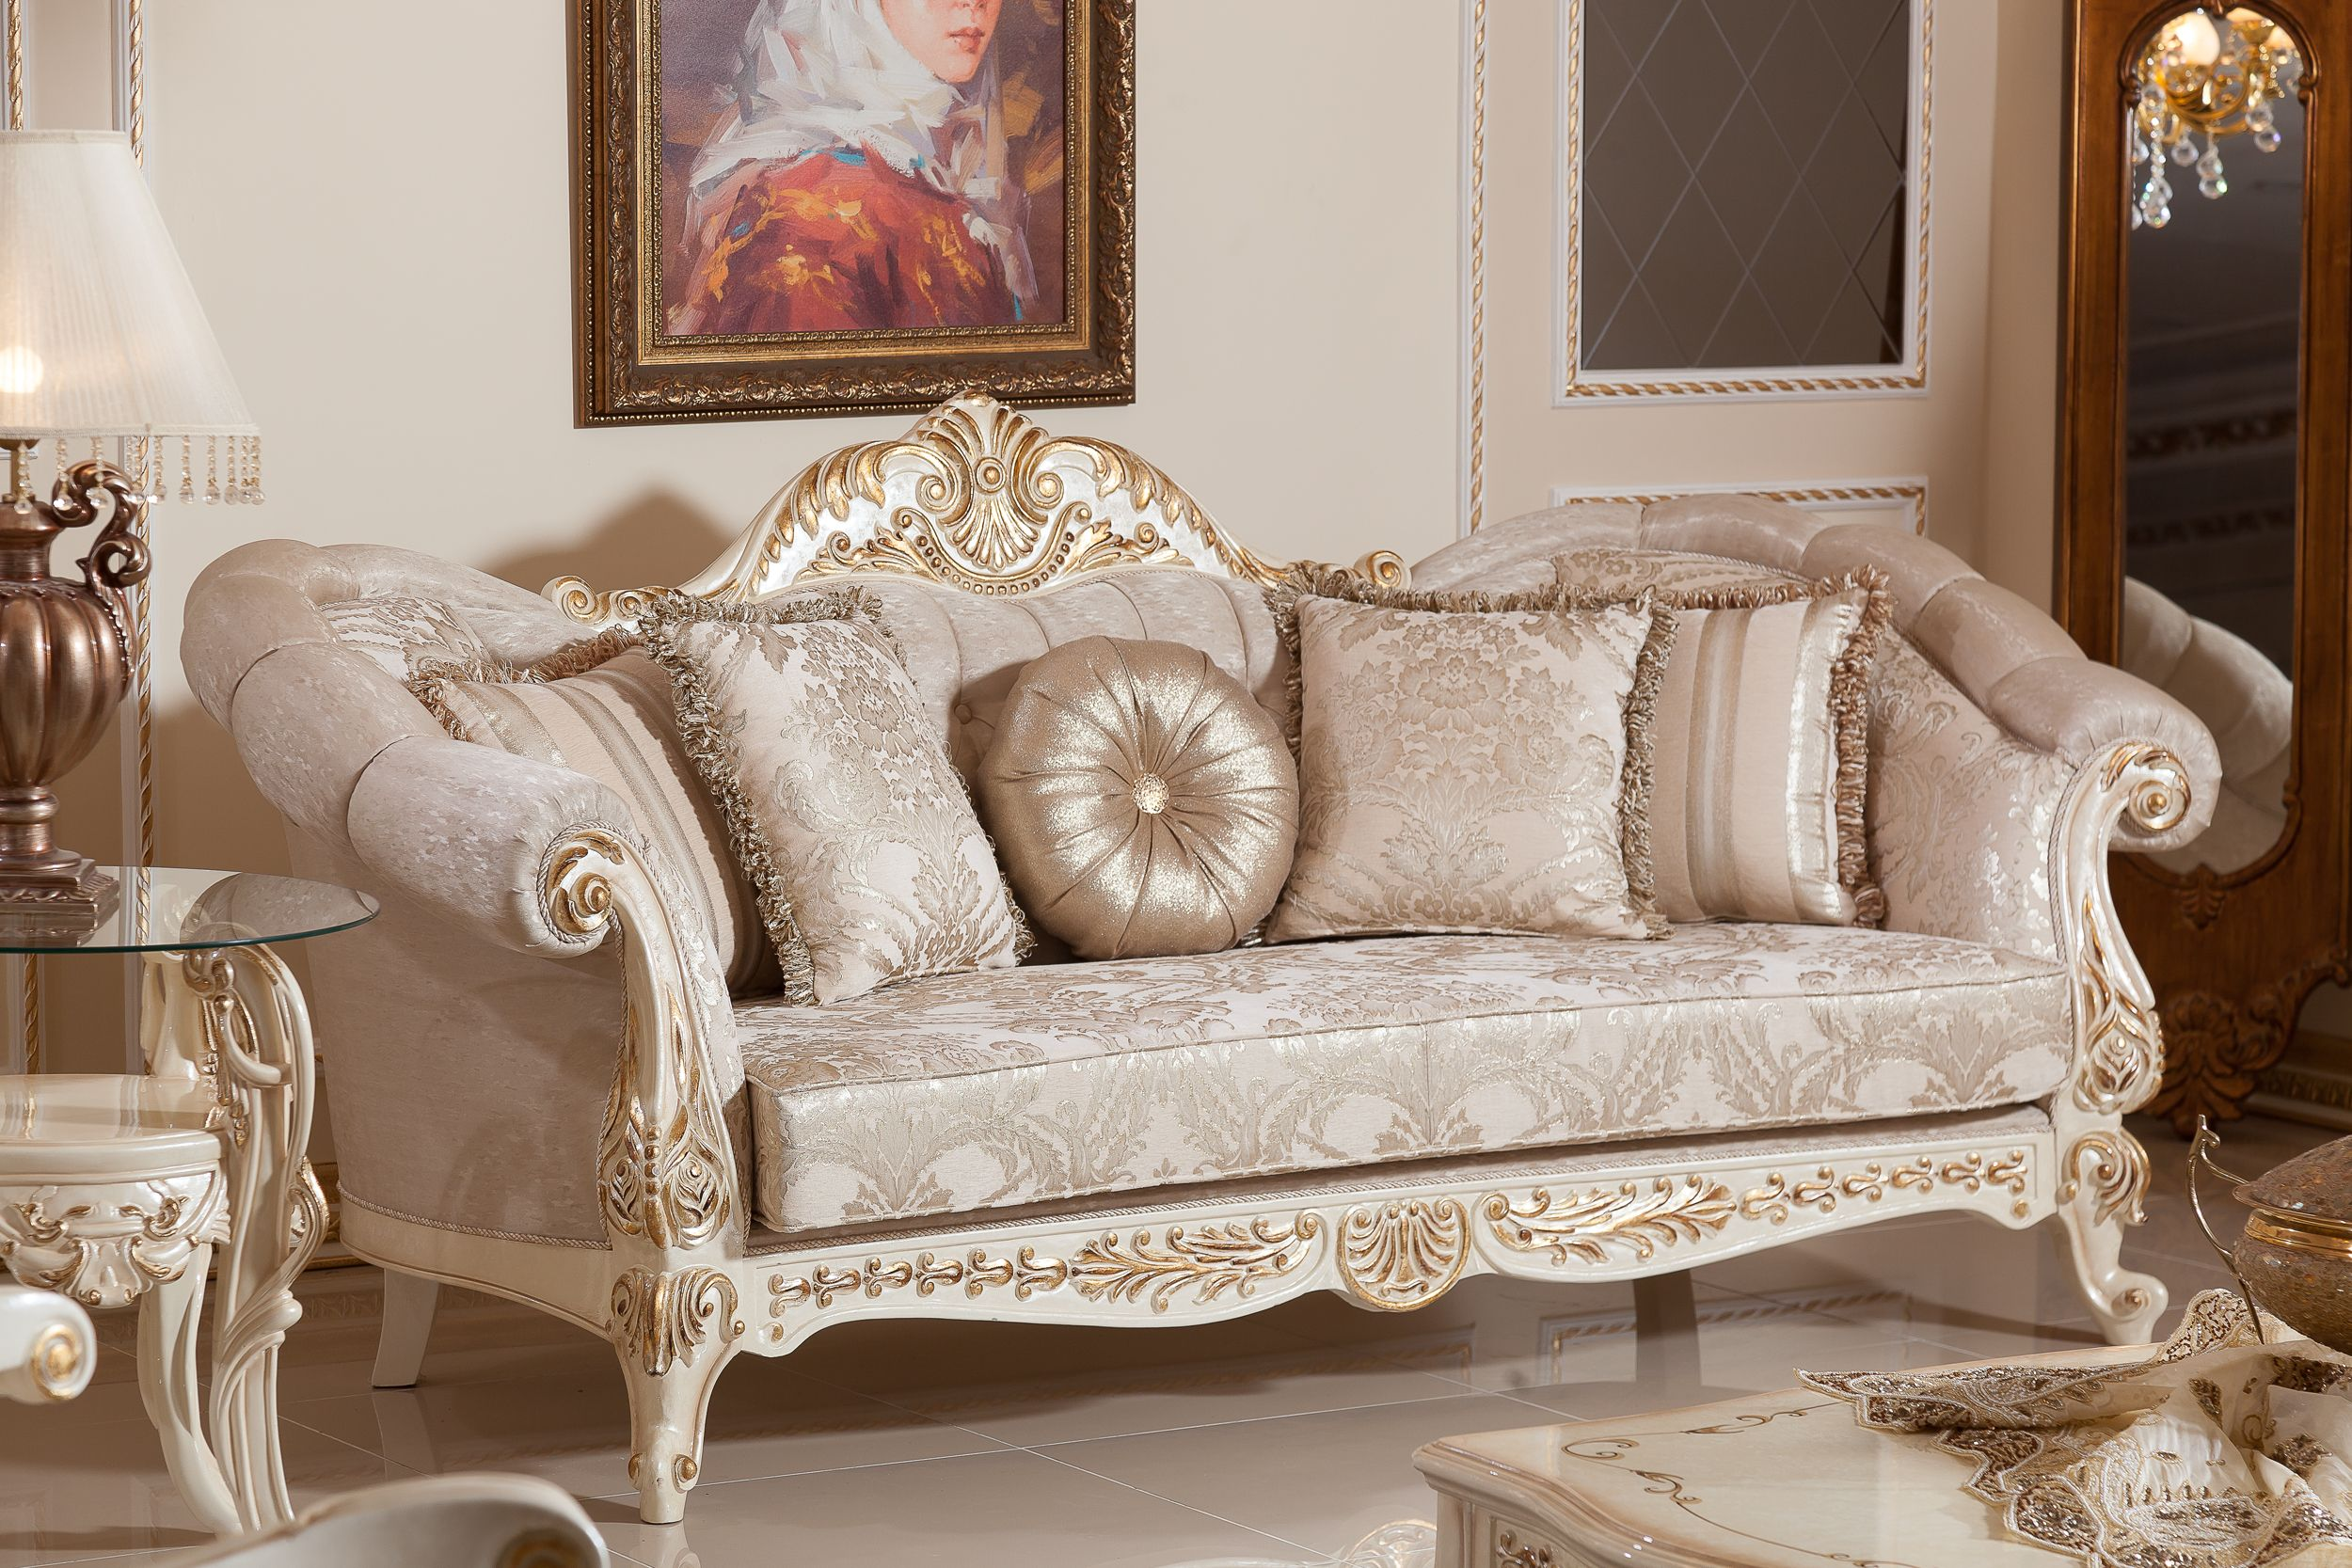 Vizyon Sofa Set Handmade Turkish Furniture You Can Give Order This